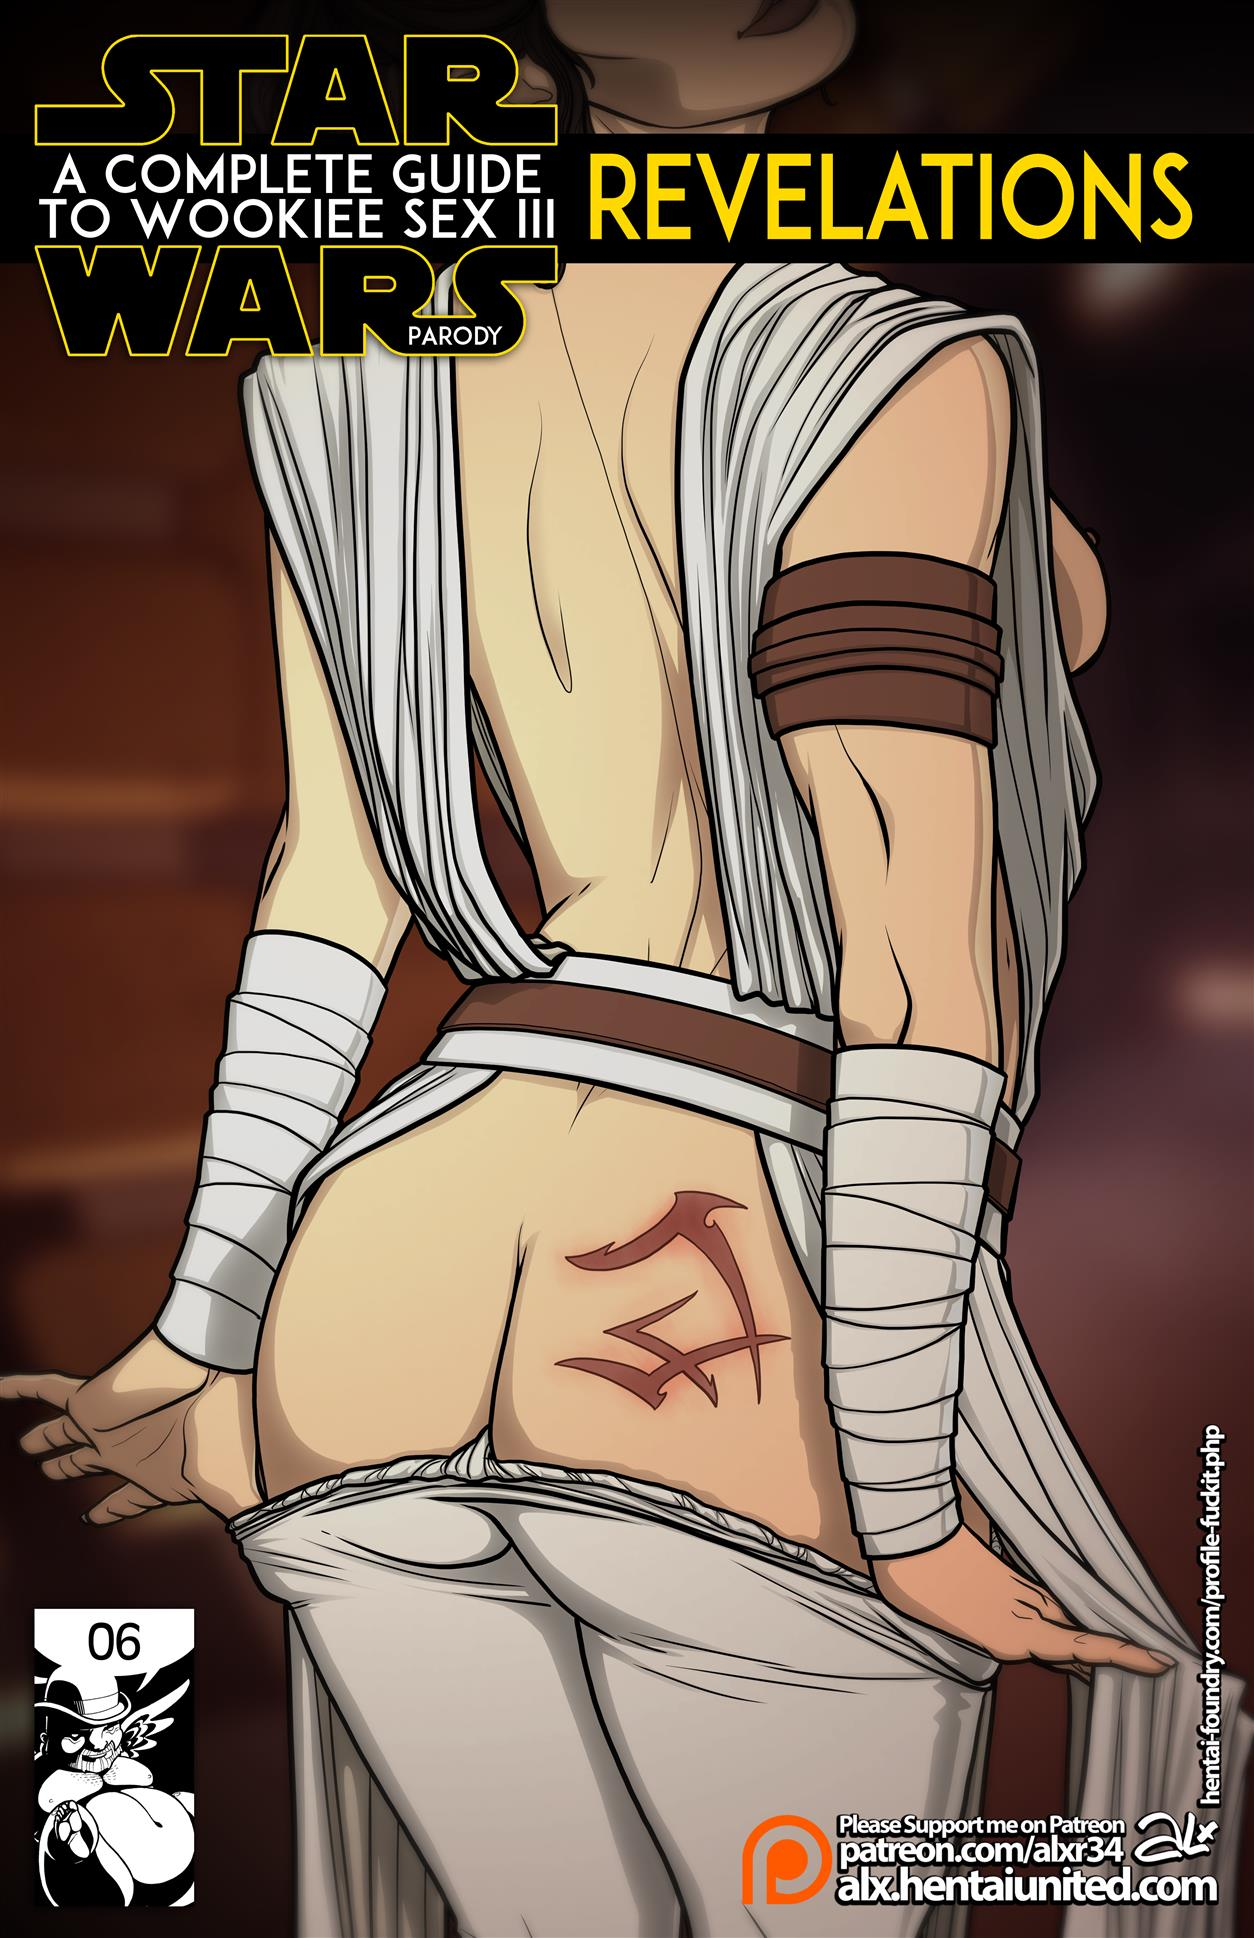 A Complete Guide to Wookie Sex III (Star Wars) [Alx]